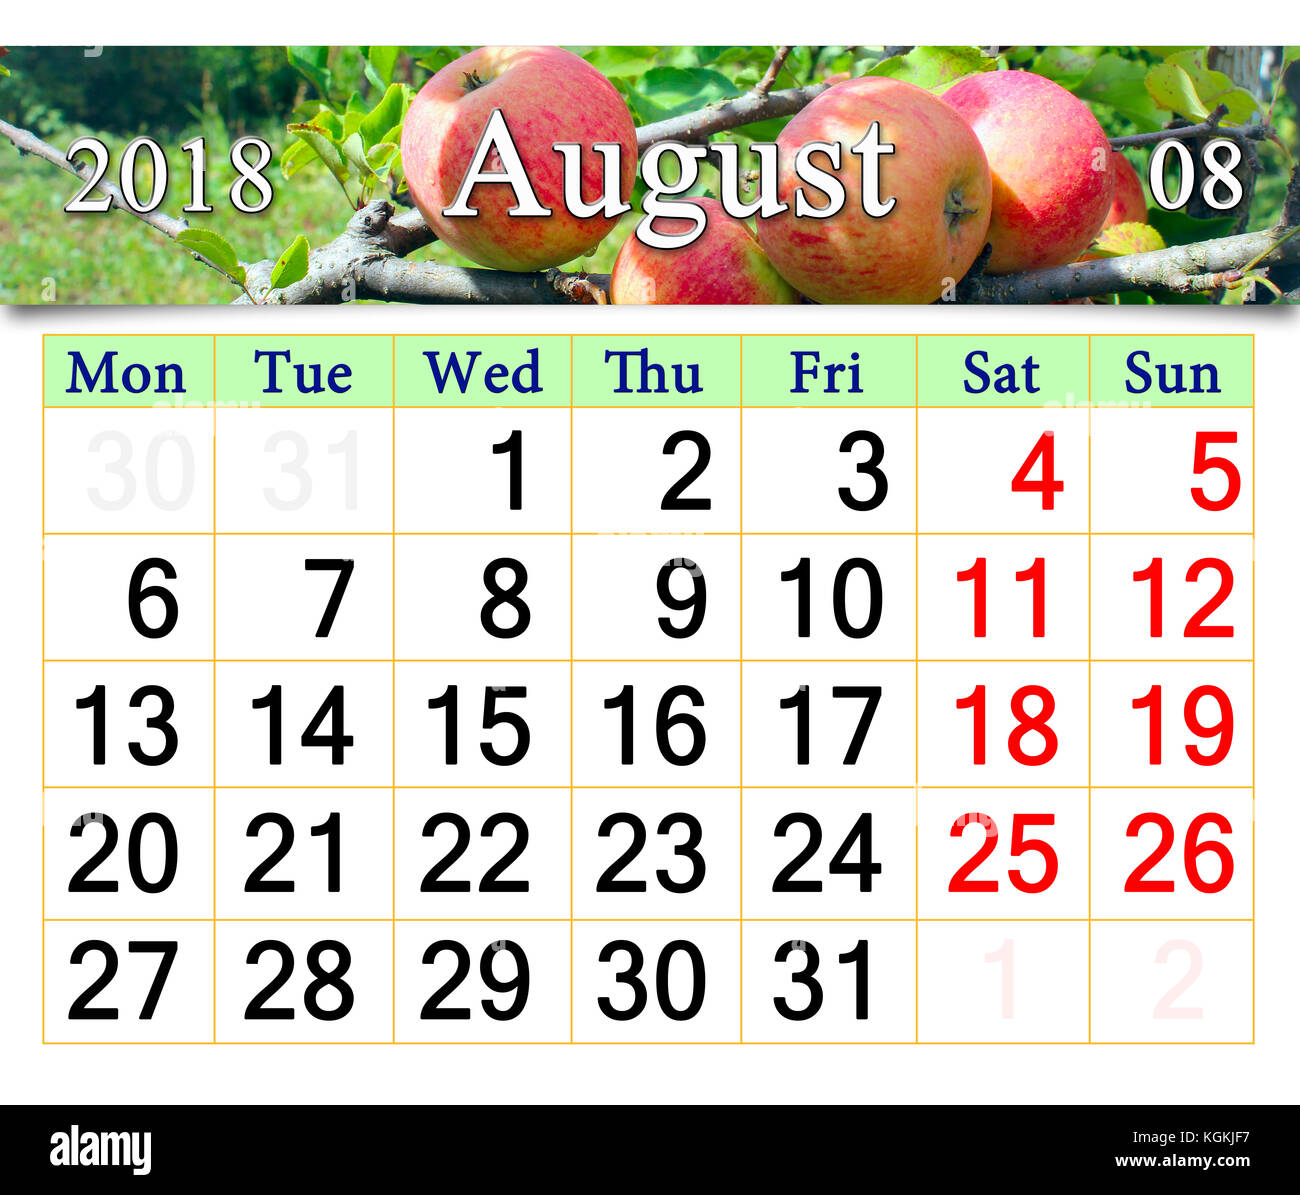 beautiful calendar for August 2018 year with ripe apples on